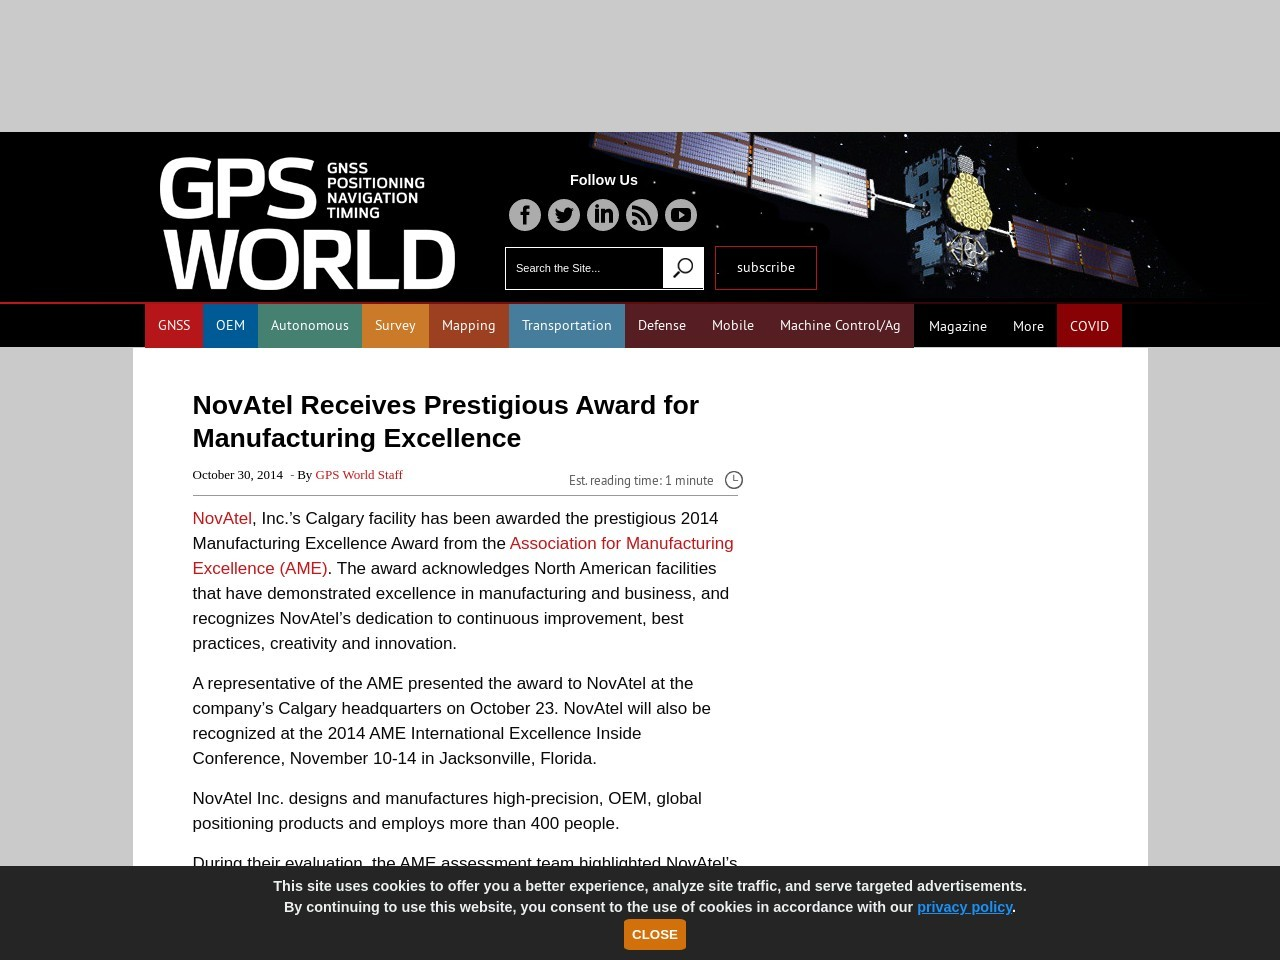 NovAtel Receives Prestigious Award for Manufacturing Excellence